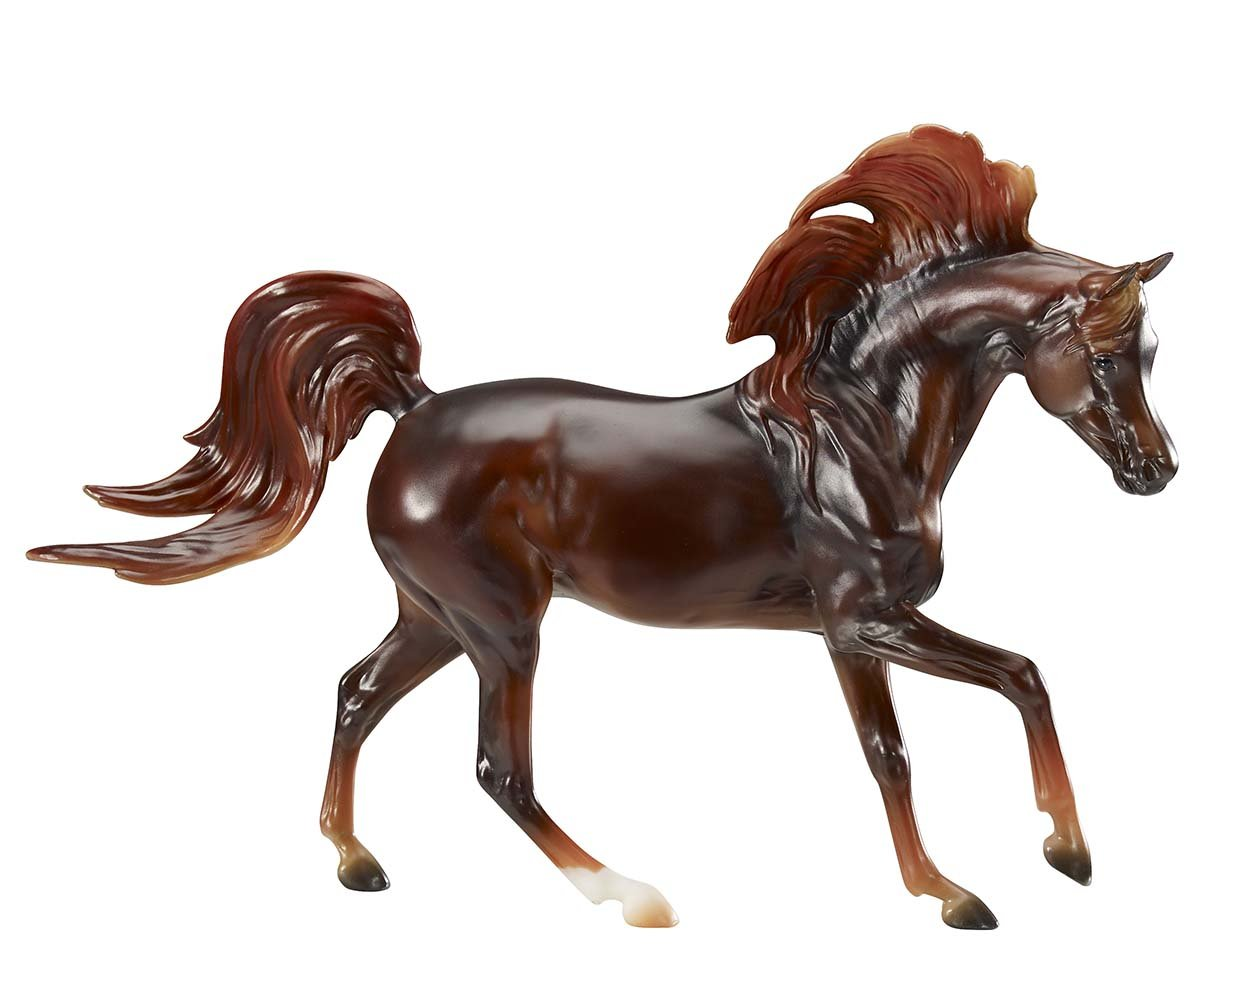 Breyer Horse Classics Collection #62119 Malik - 2019 Horse of the Year - New Factory Sealed